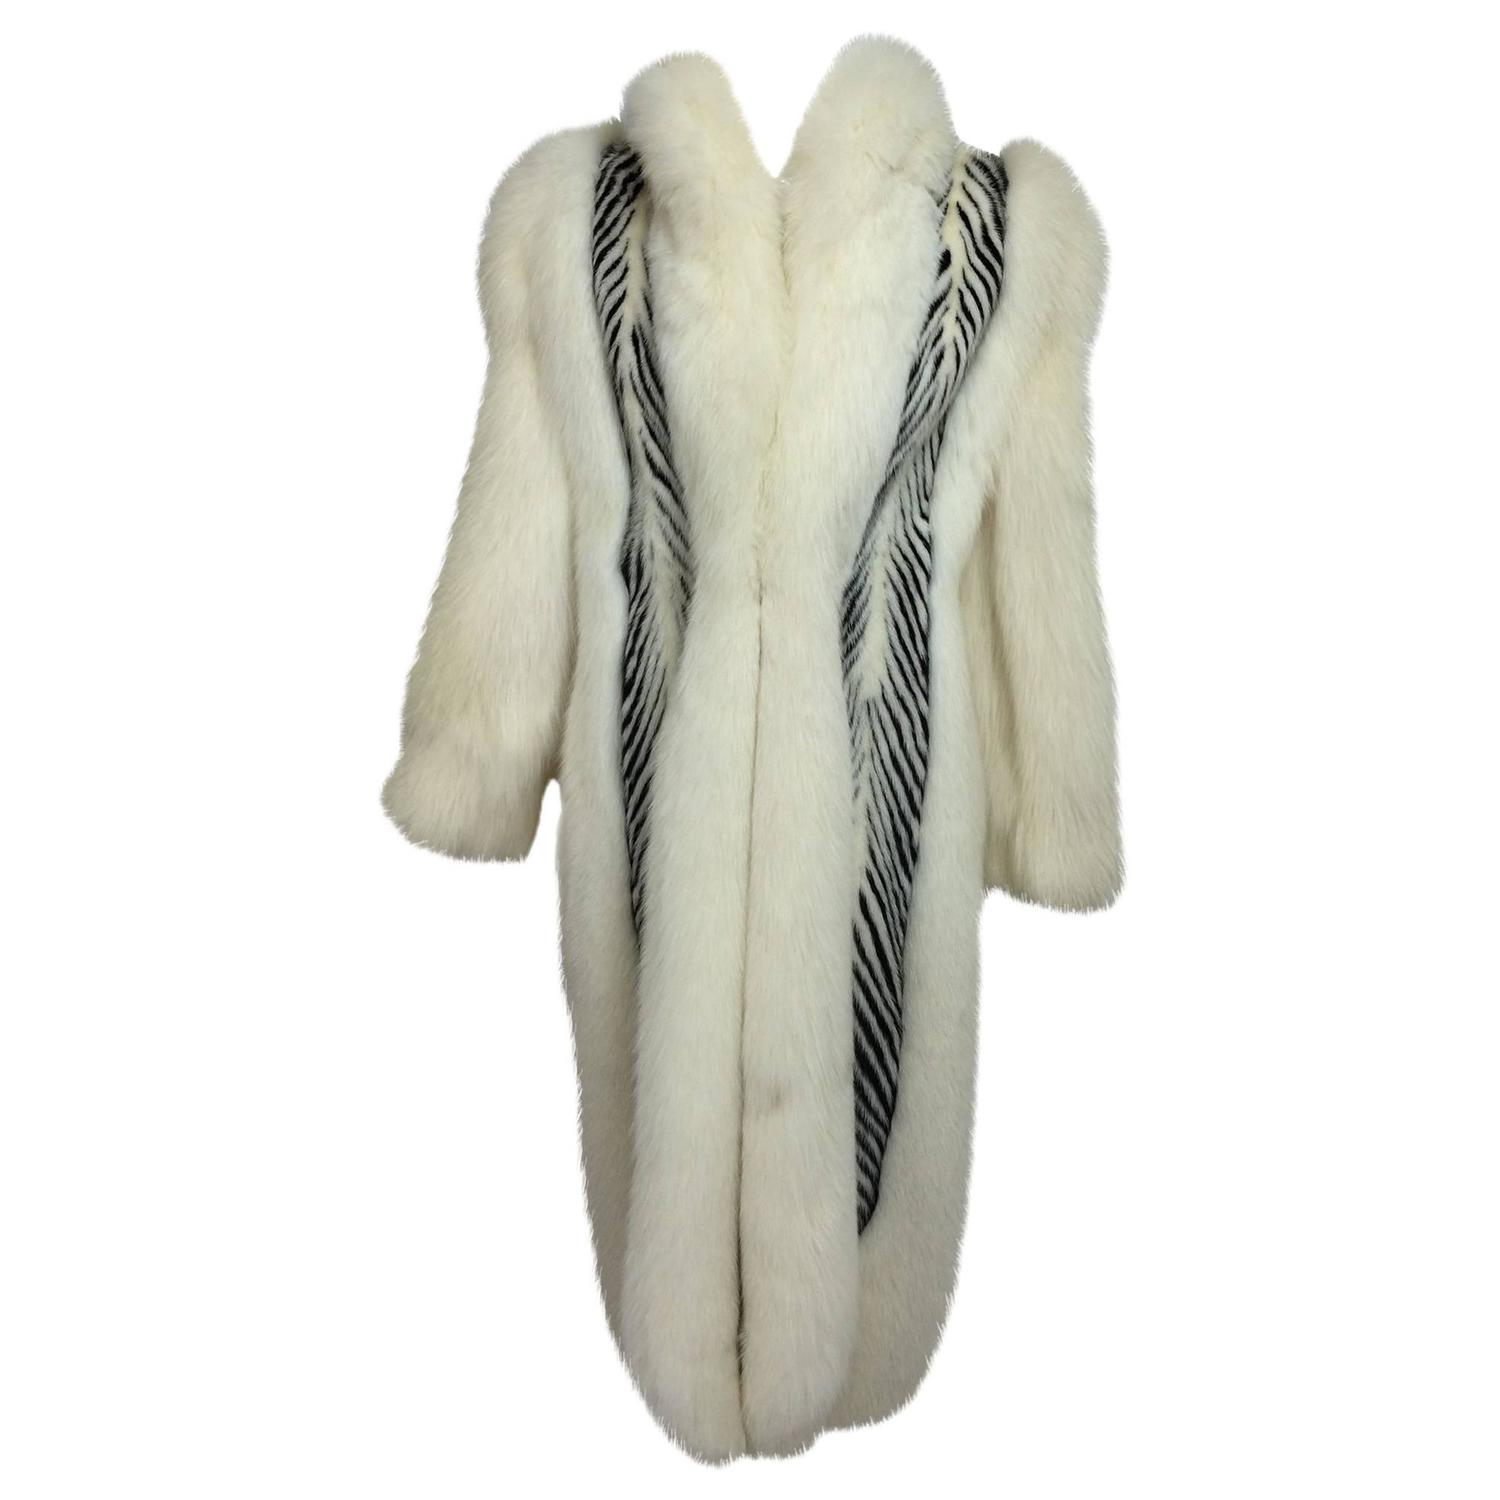 Furnitureinfashion Is Offering Very Affordable Arctic: Aladino Stefani Arctic Fox And Sheared Black And White